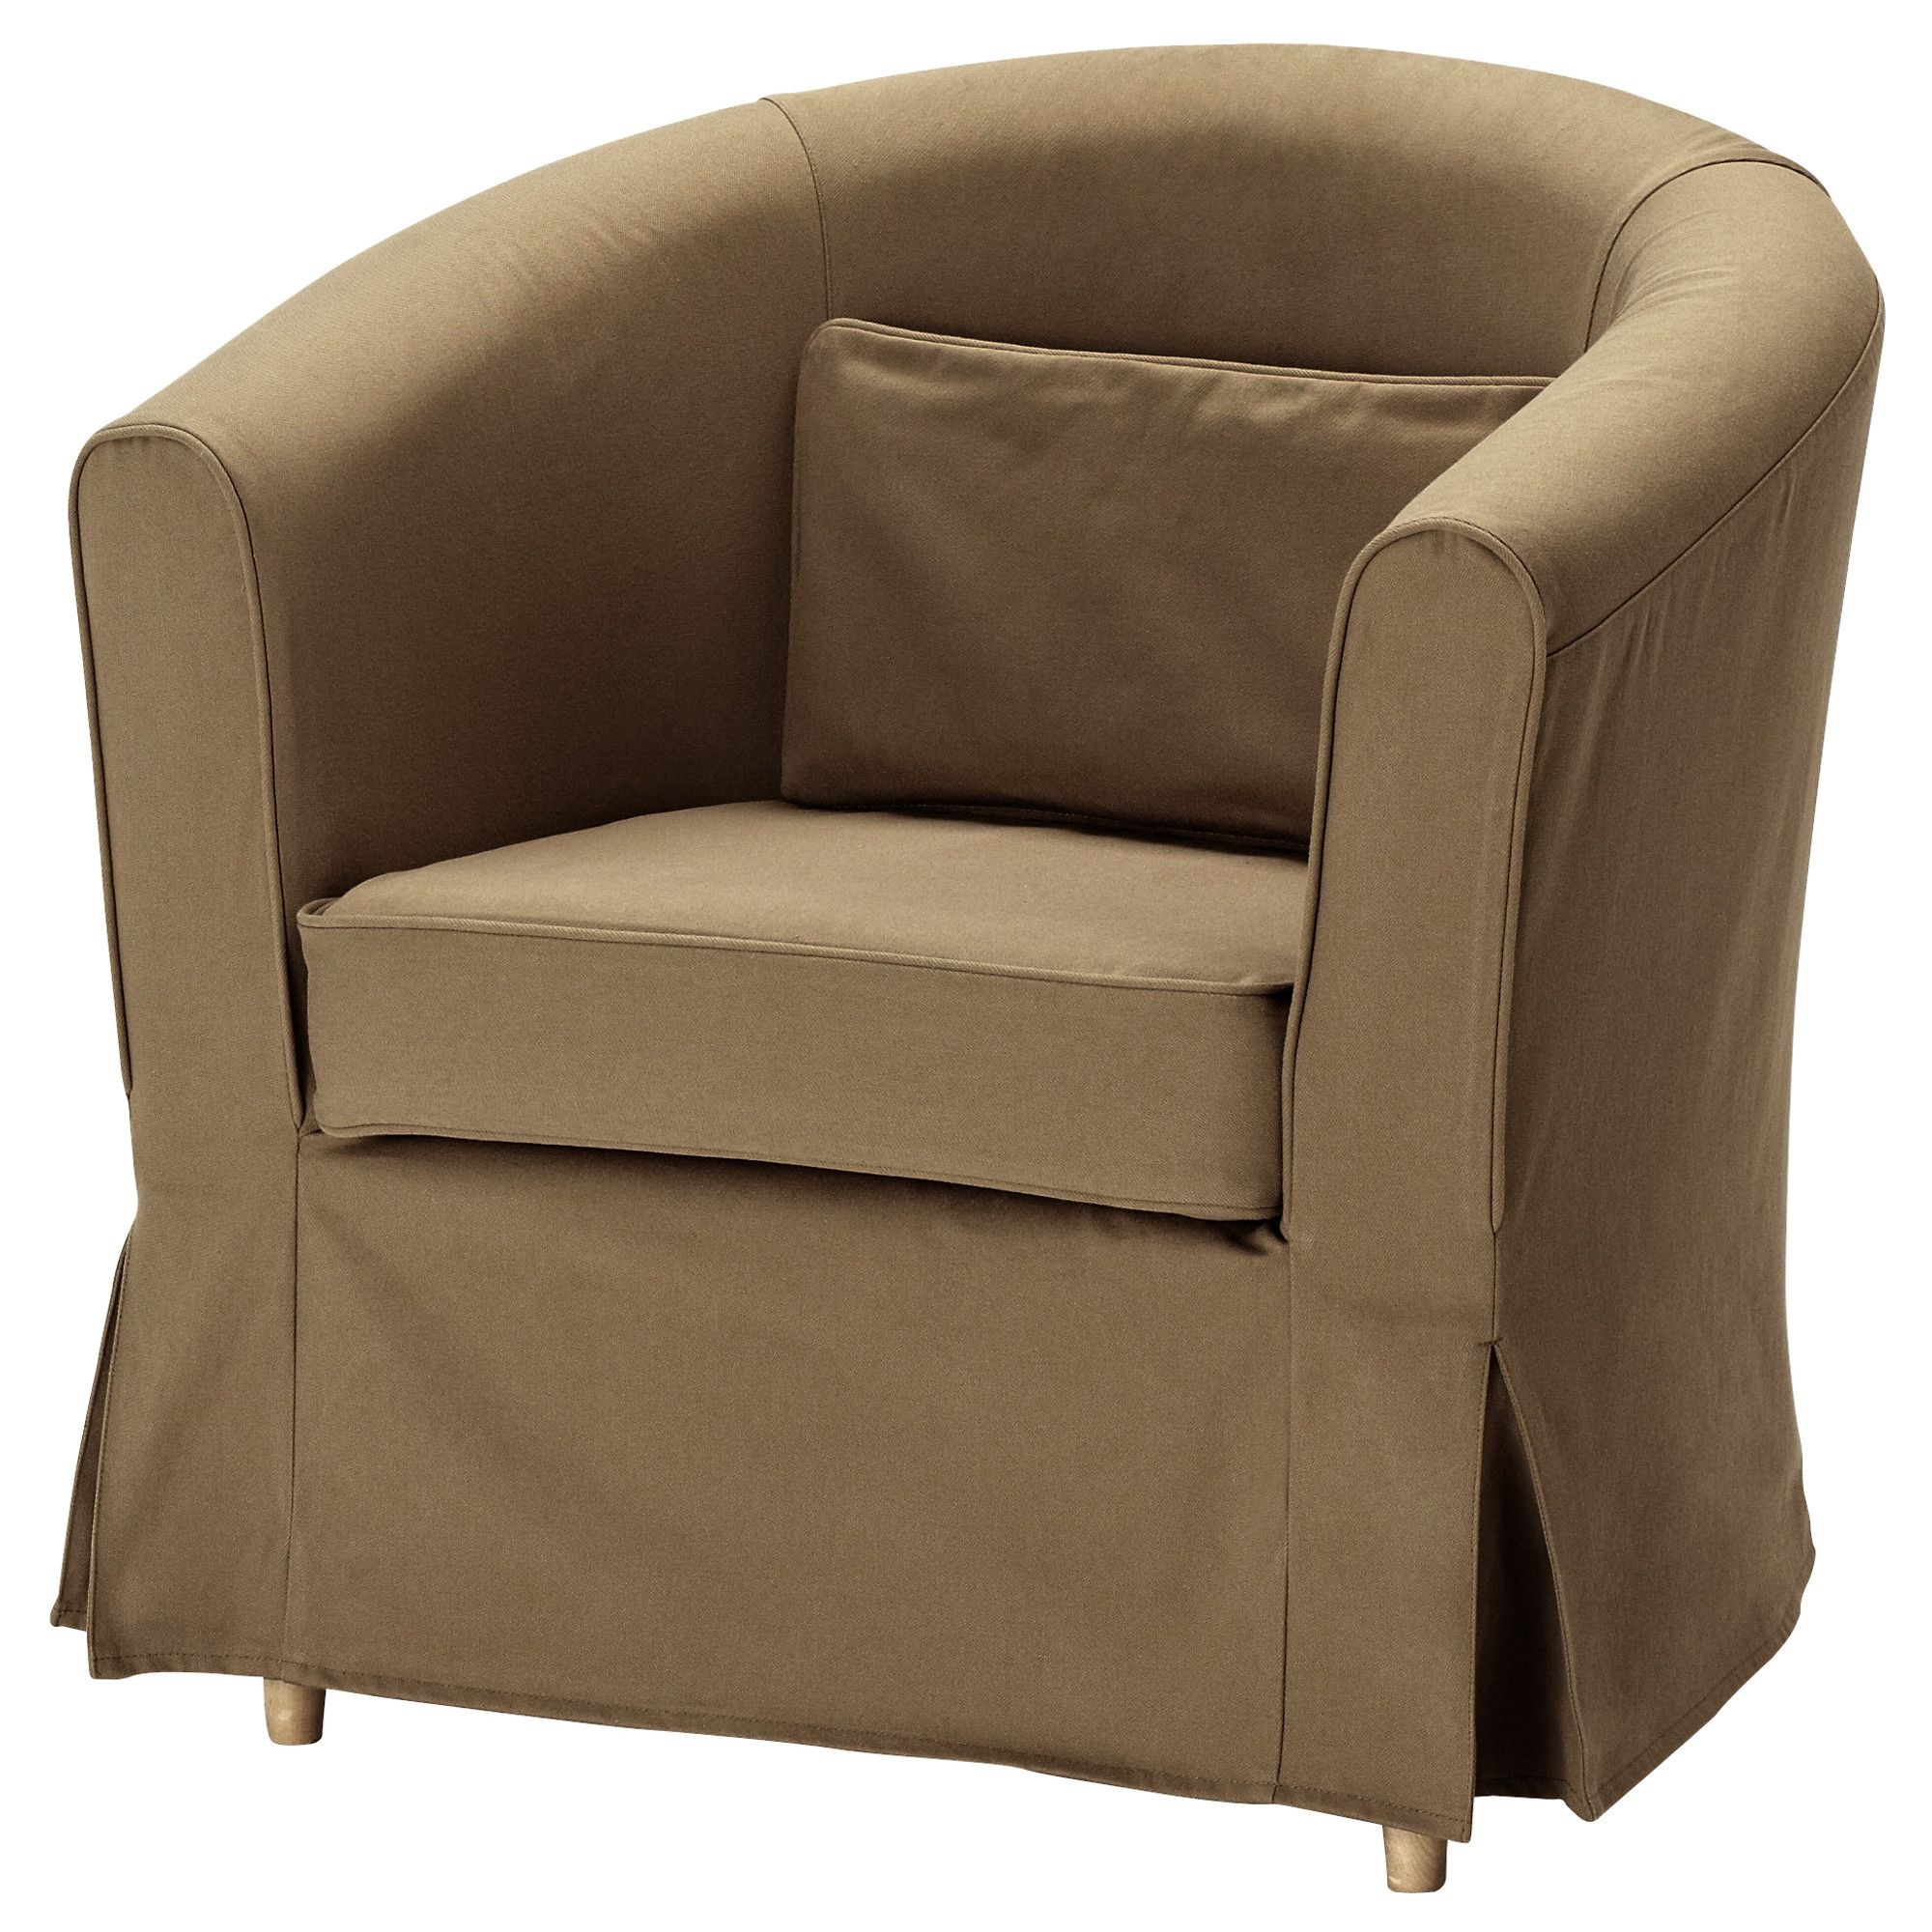 Tullsta Sessel Ektorp Tullsta Chair Cover Idemo Light Brown Ikea For The